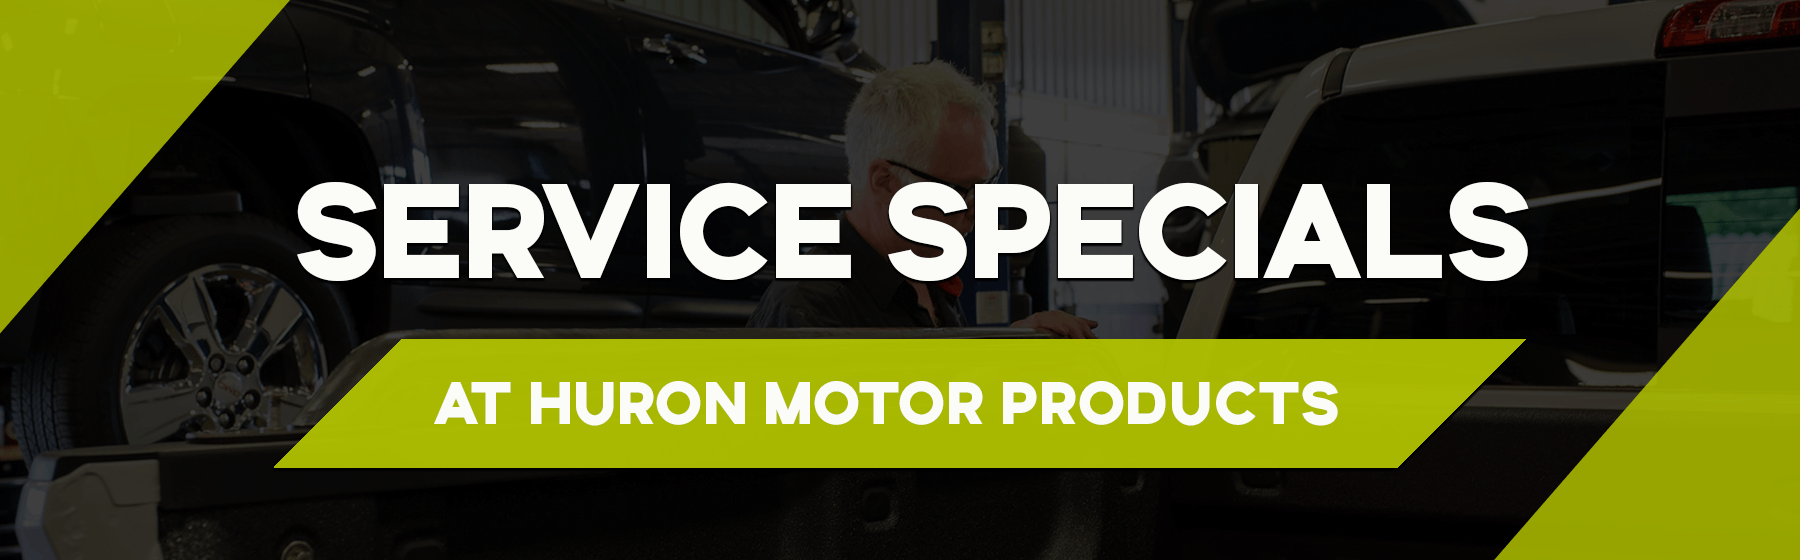 Certified Service Specials @ Huron Motor Products